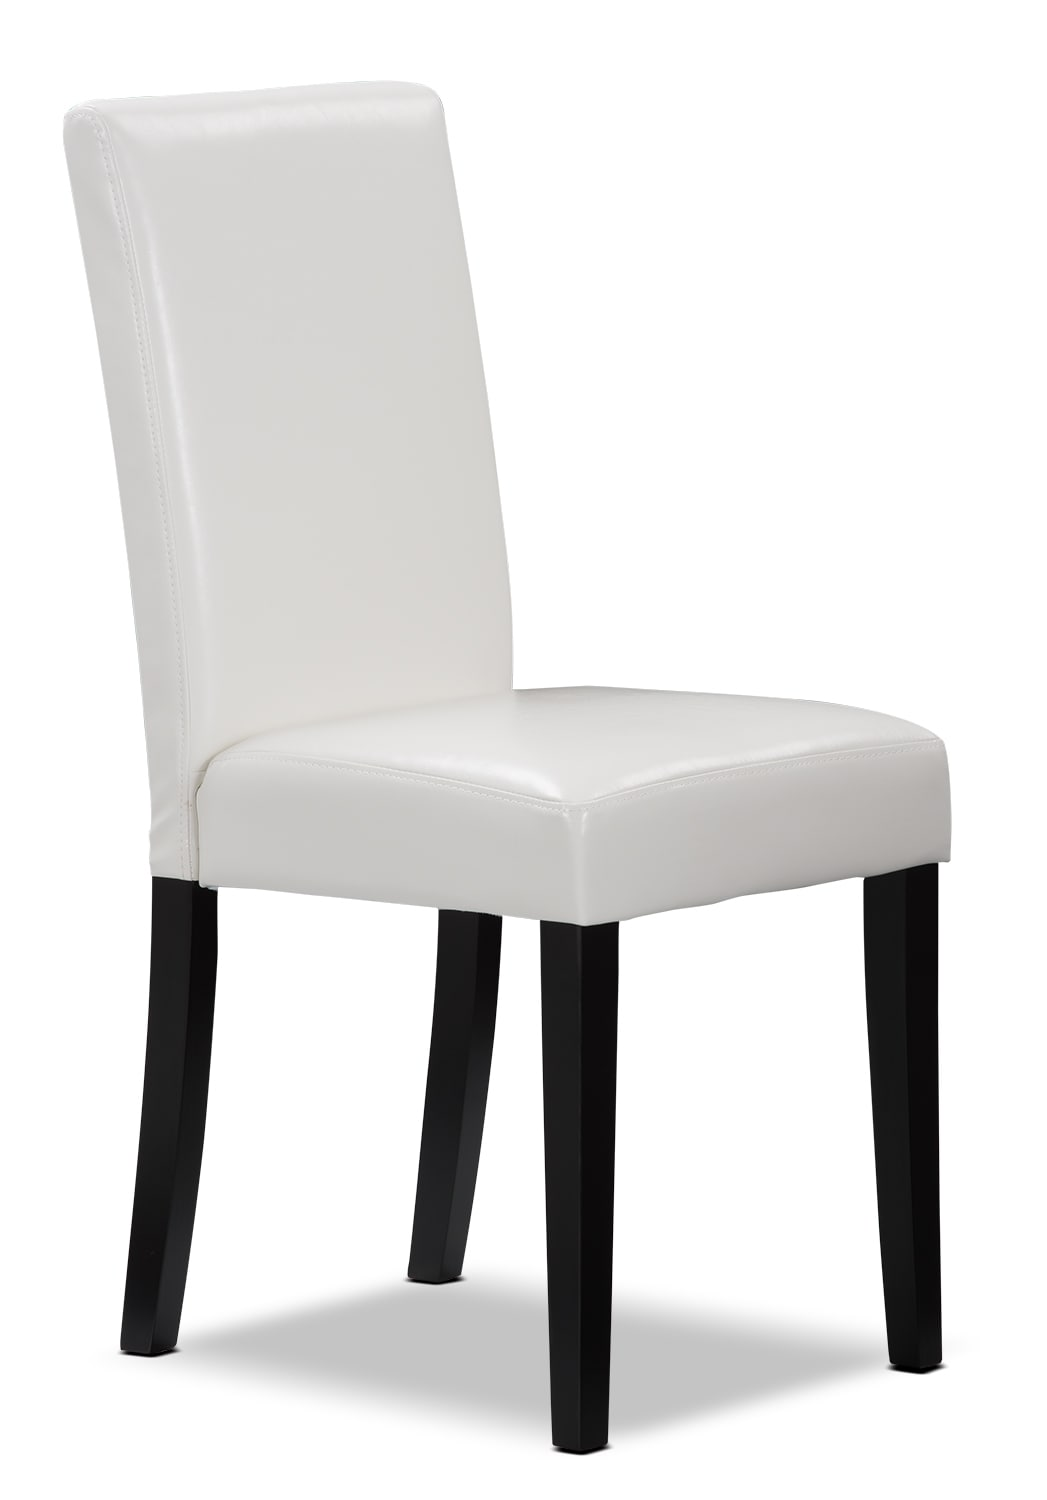 White faux leather accent dining chair united furniture for Faux leather dining chairs